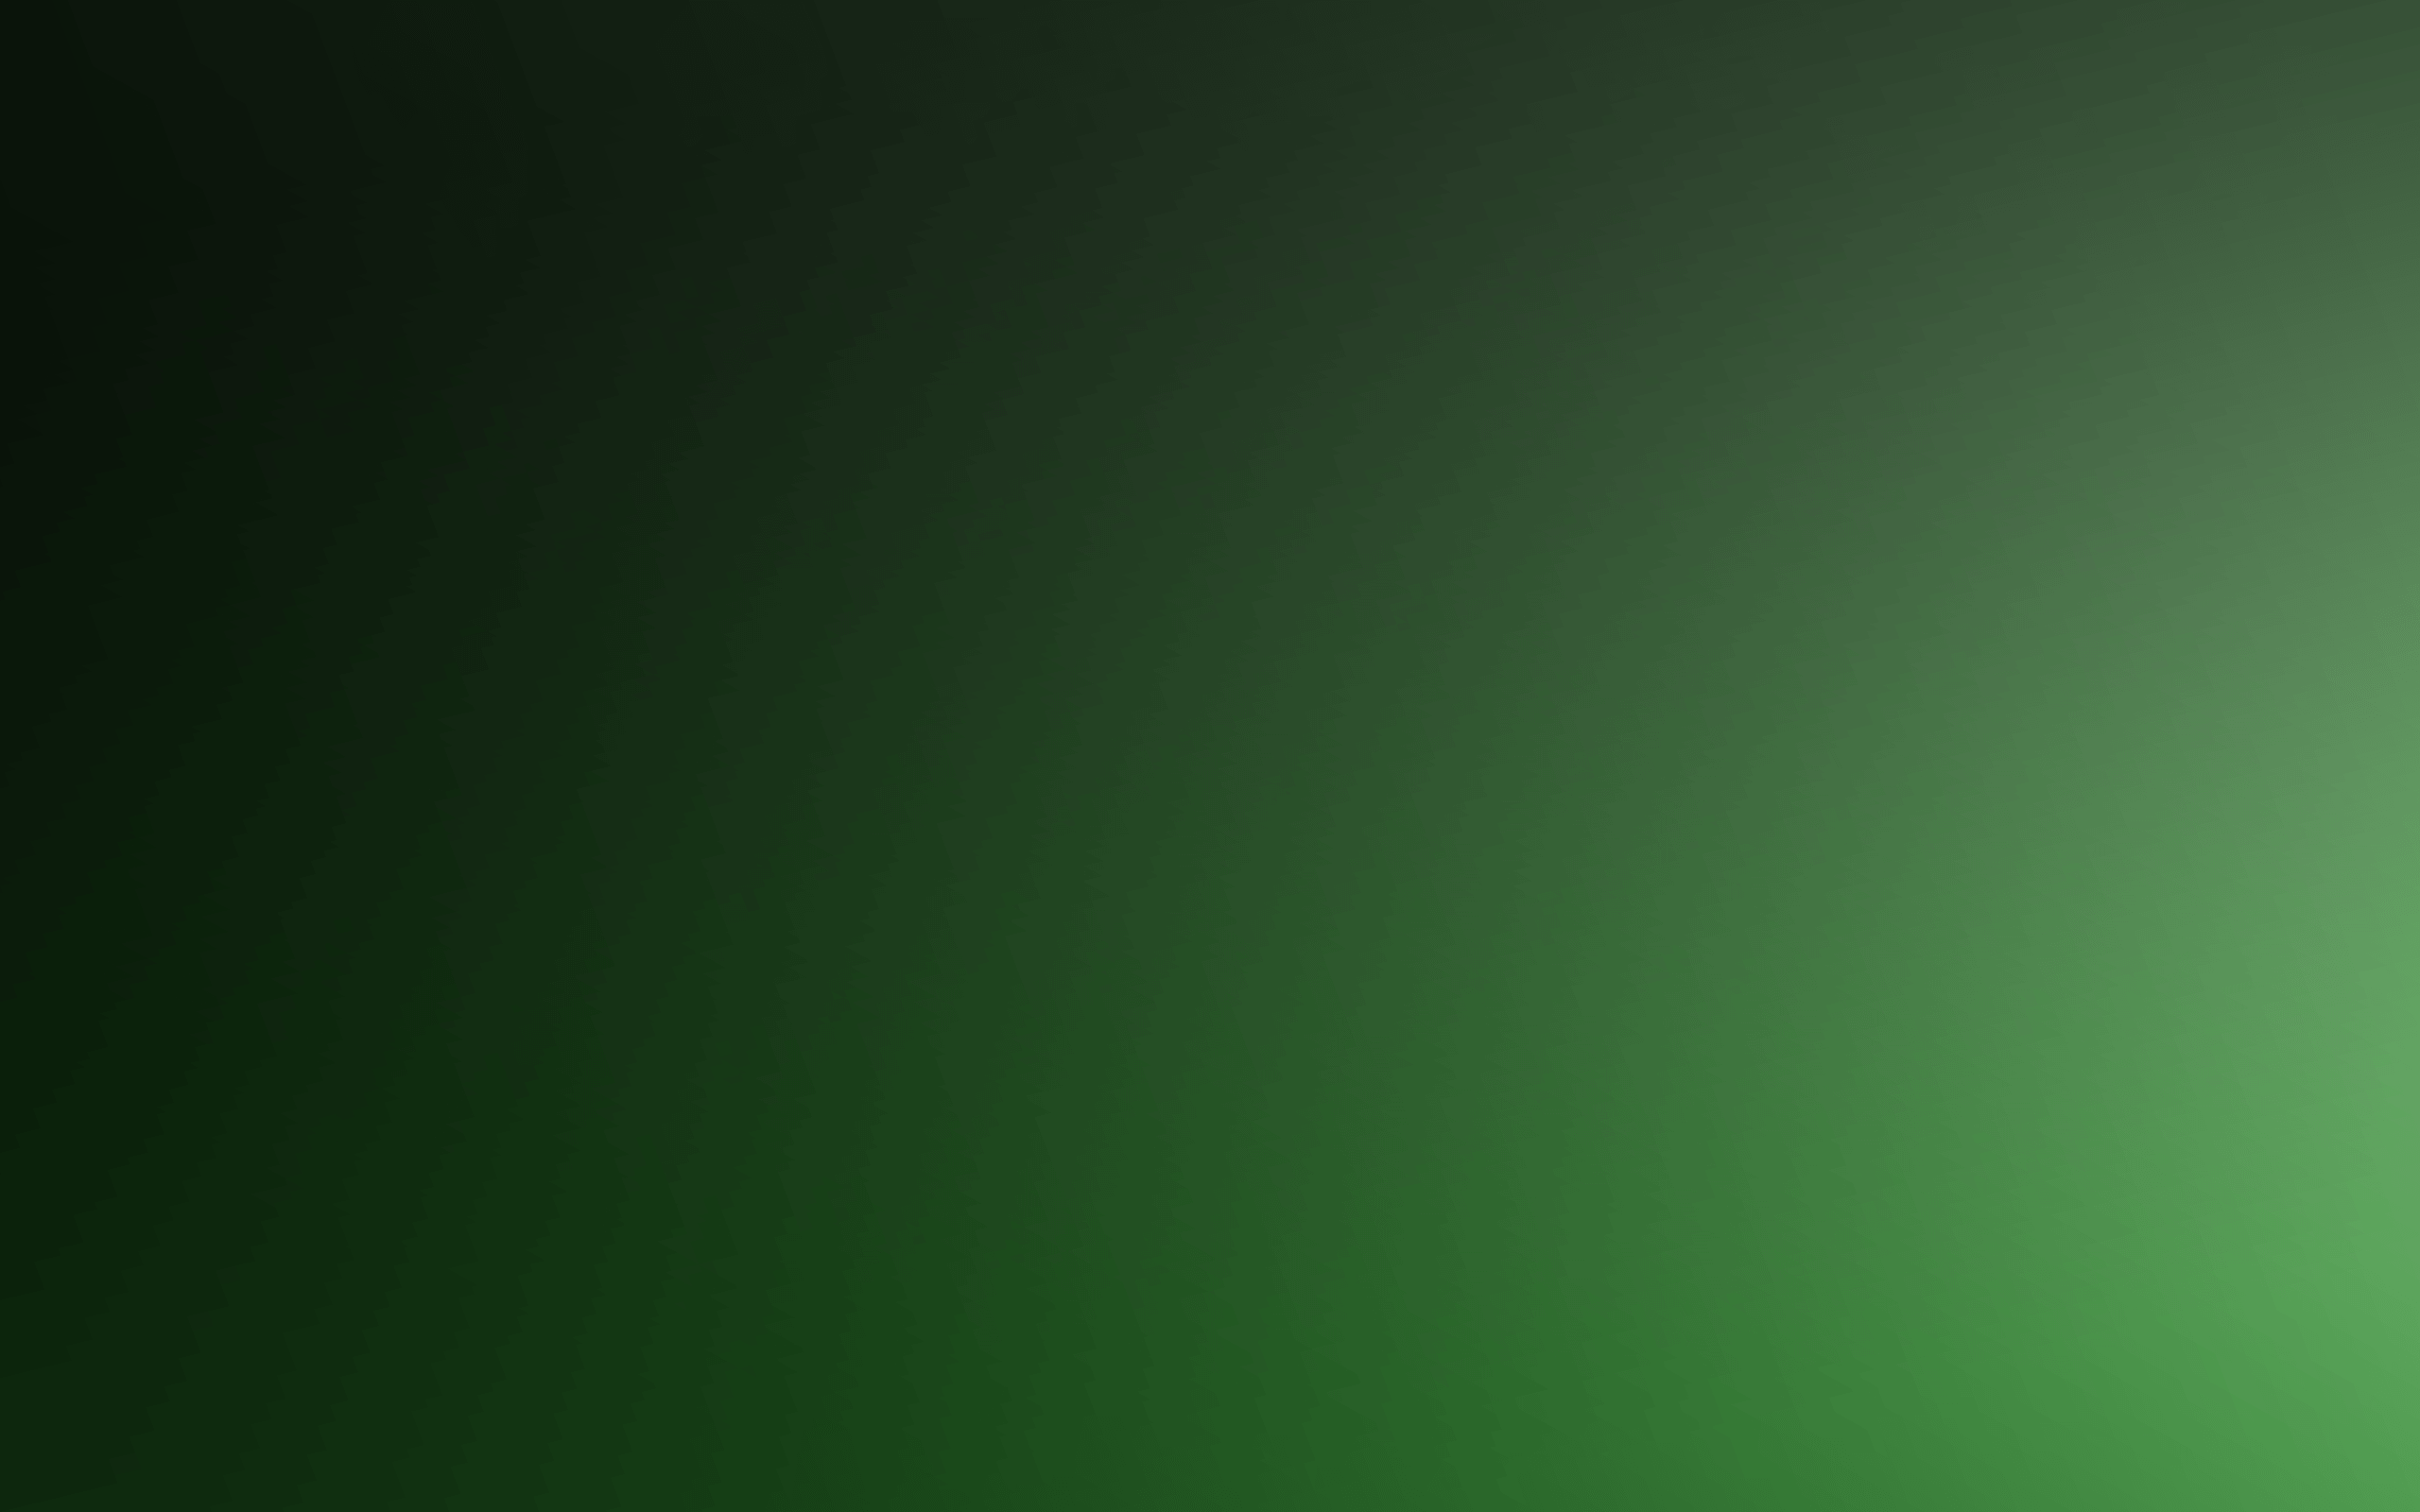 1366x768 blue green dark - photo #4